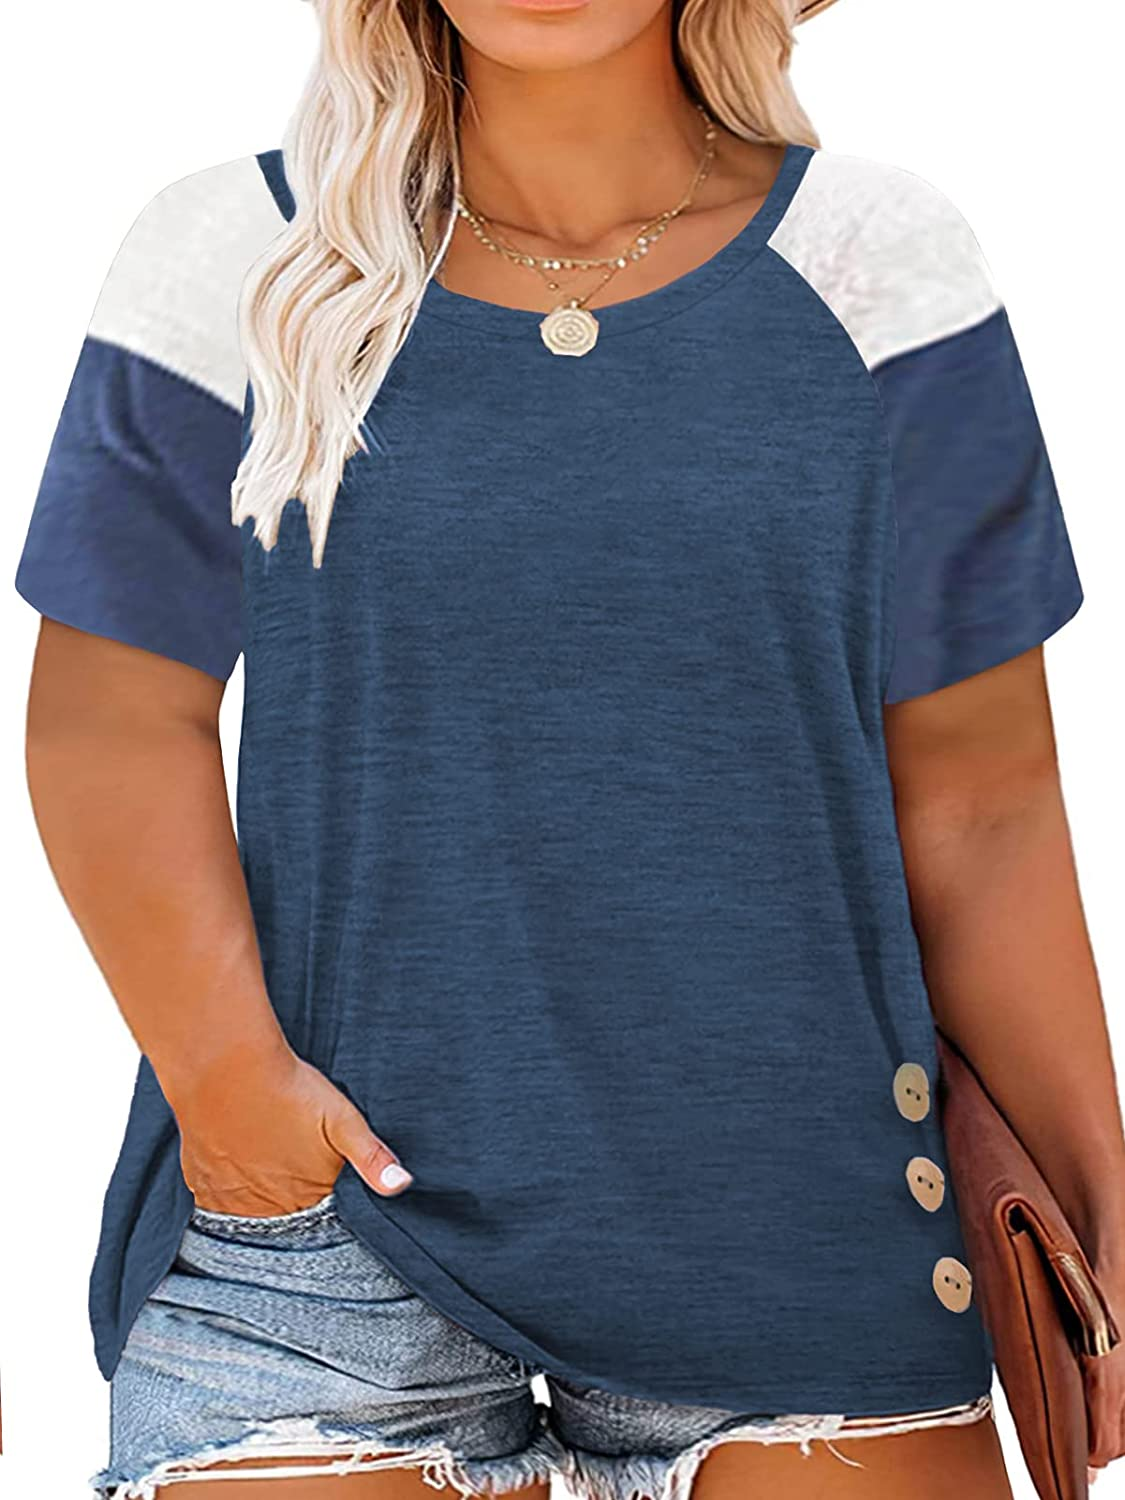 DOLNINE Plus-Size Tops for Women Short Sleeve Color Block Casual T-Shirts Tunics